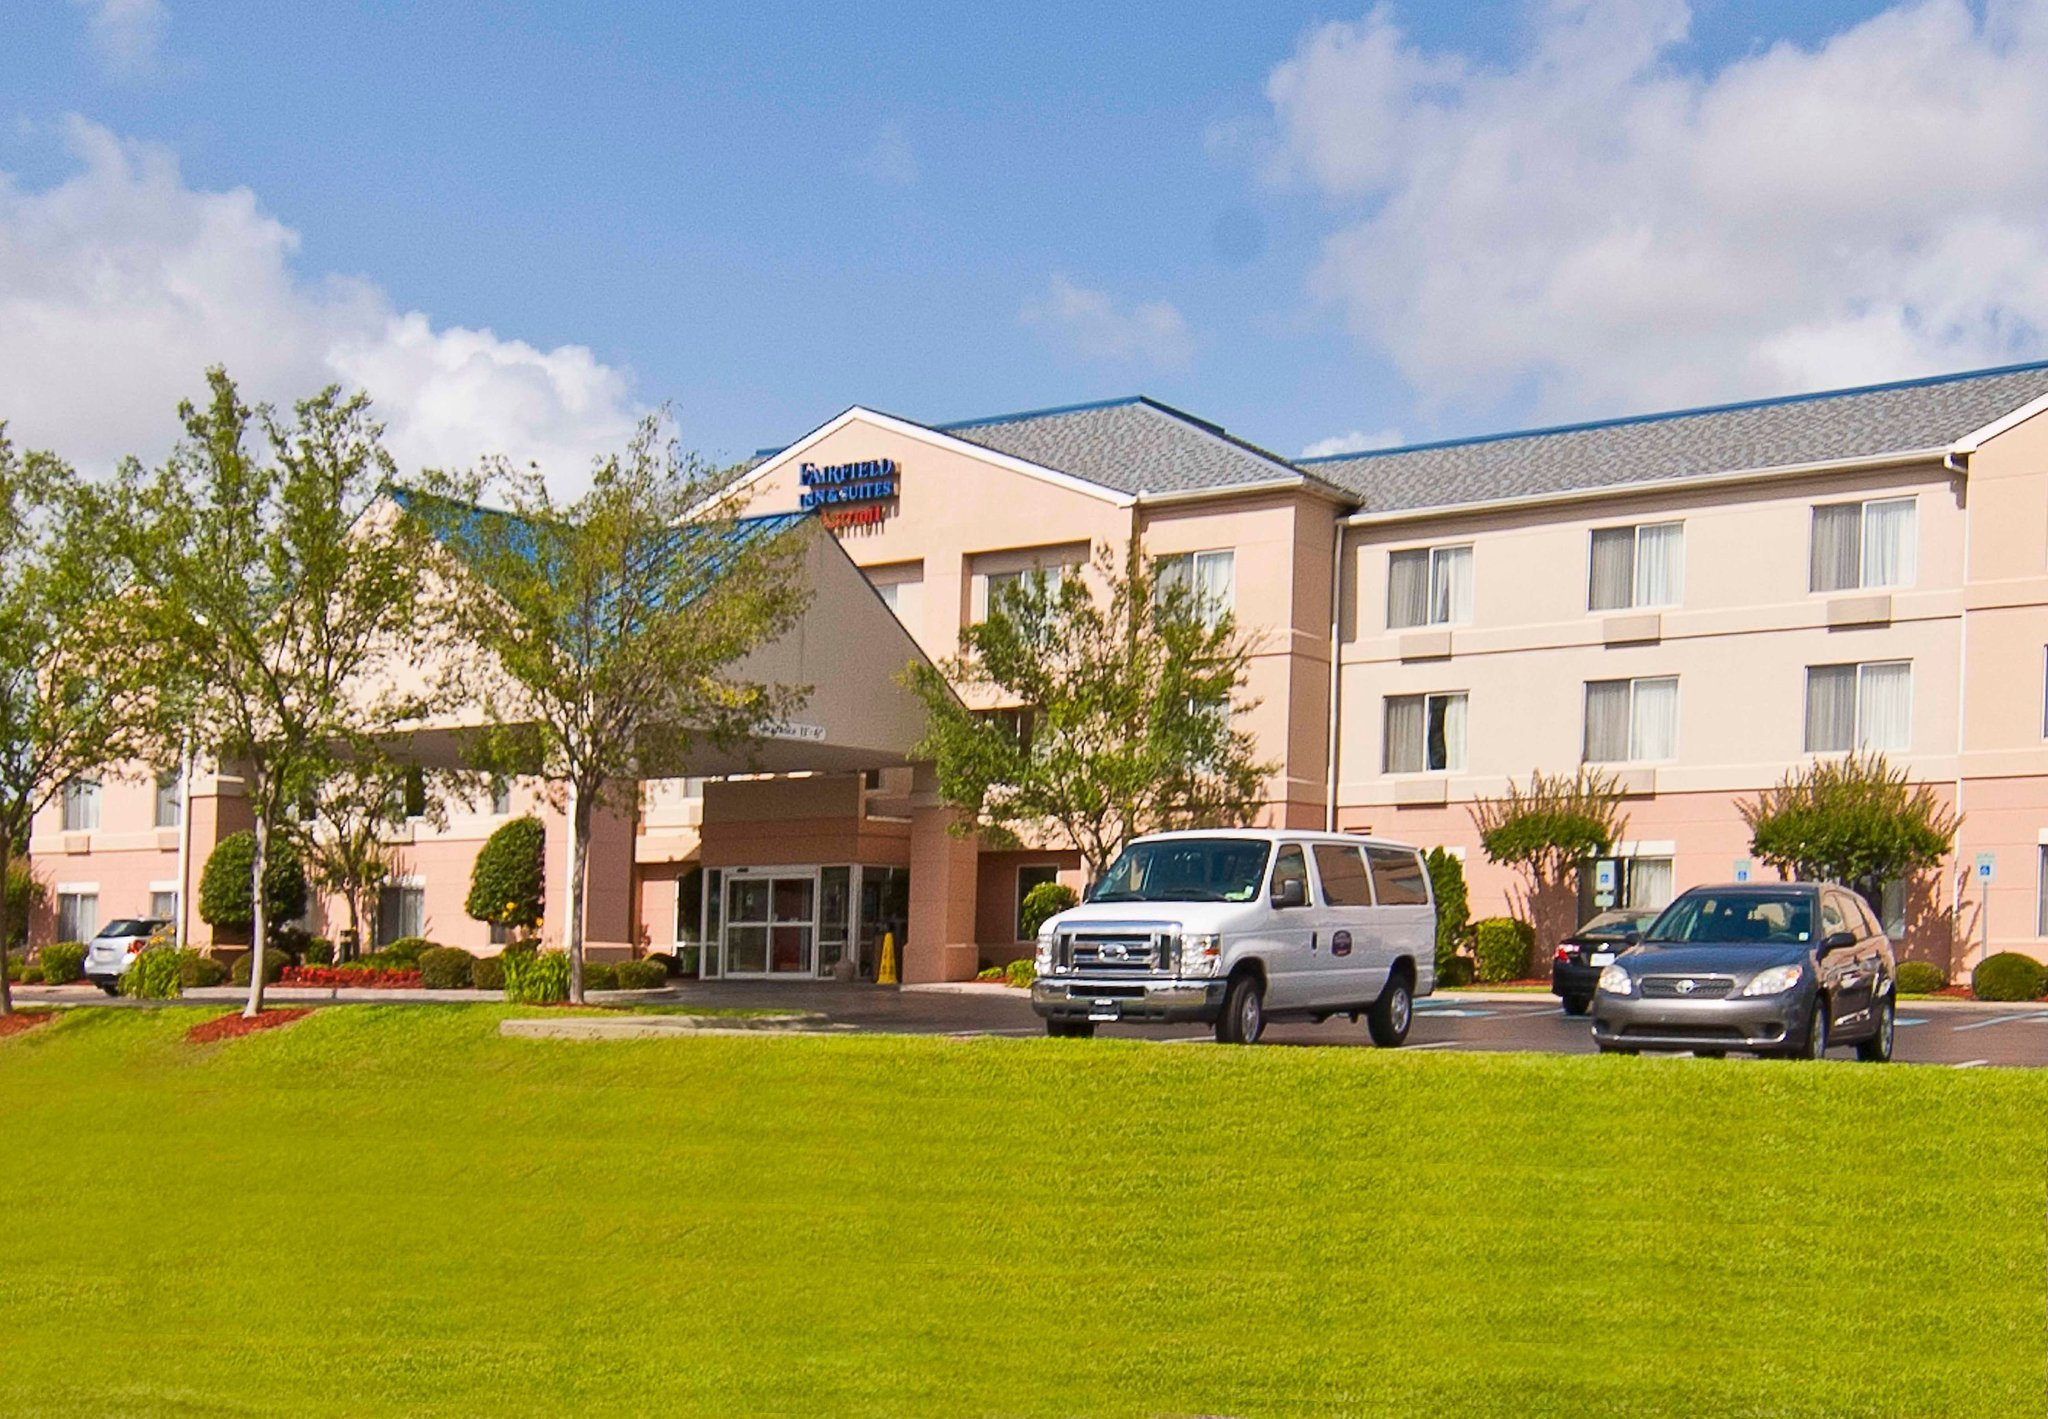 Fairfield Inn & Suites Jackson Airport